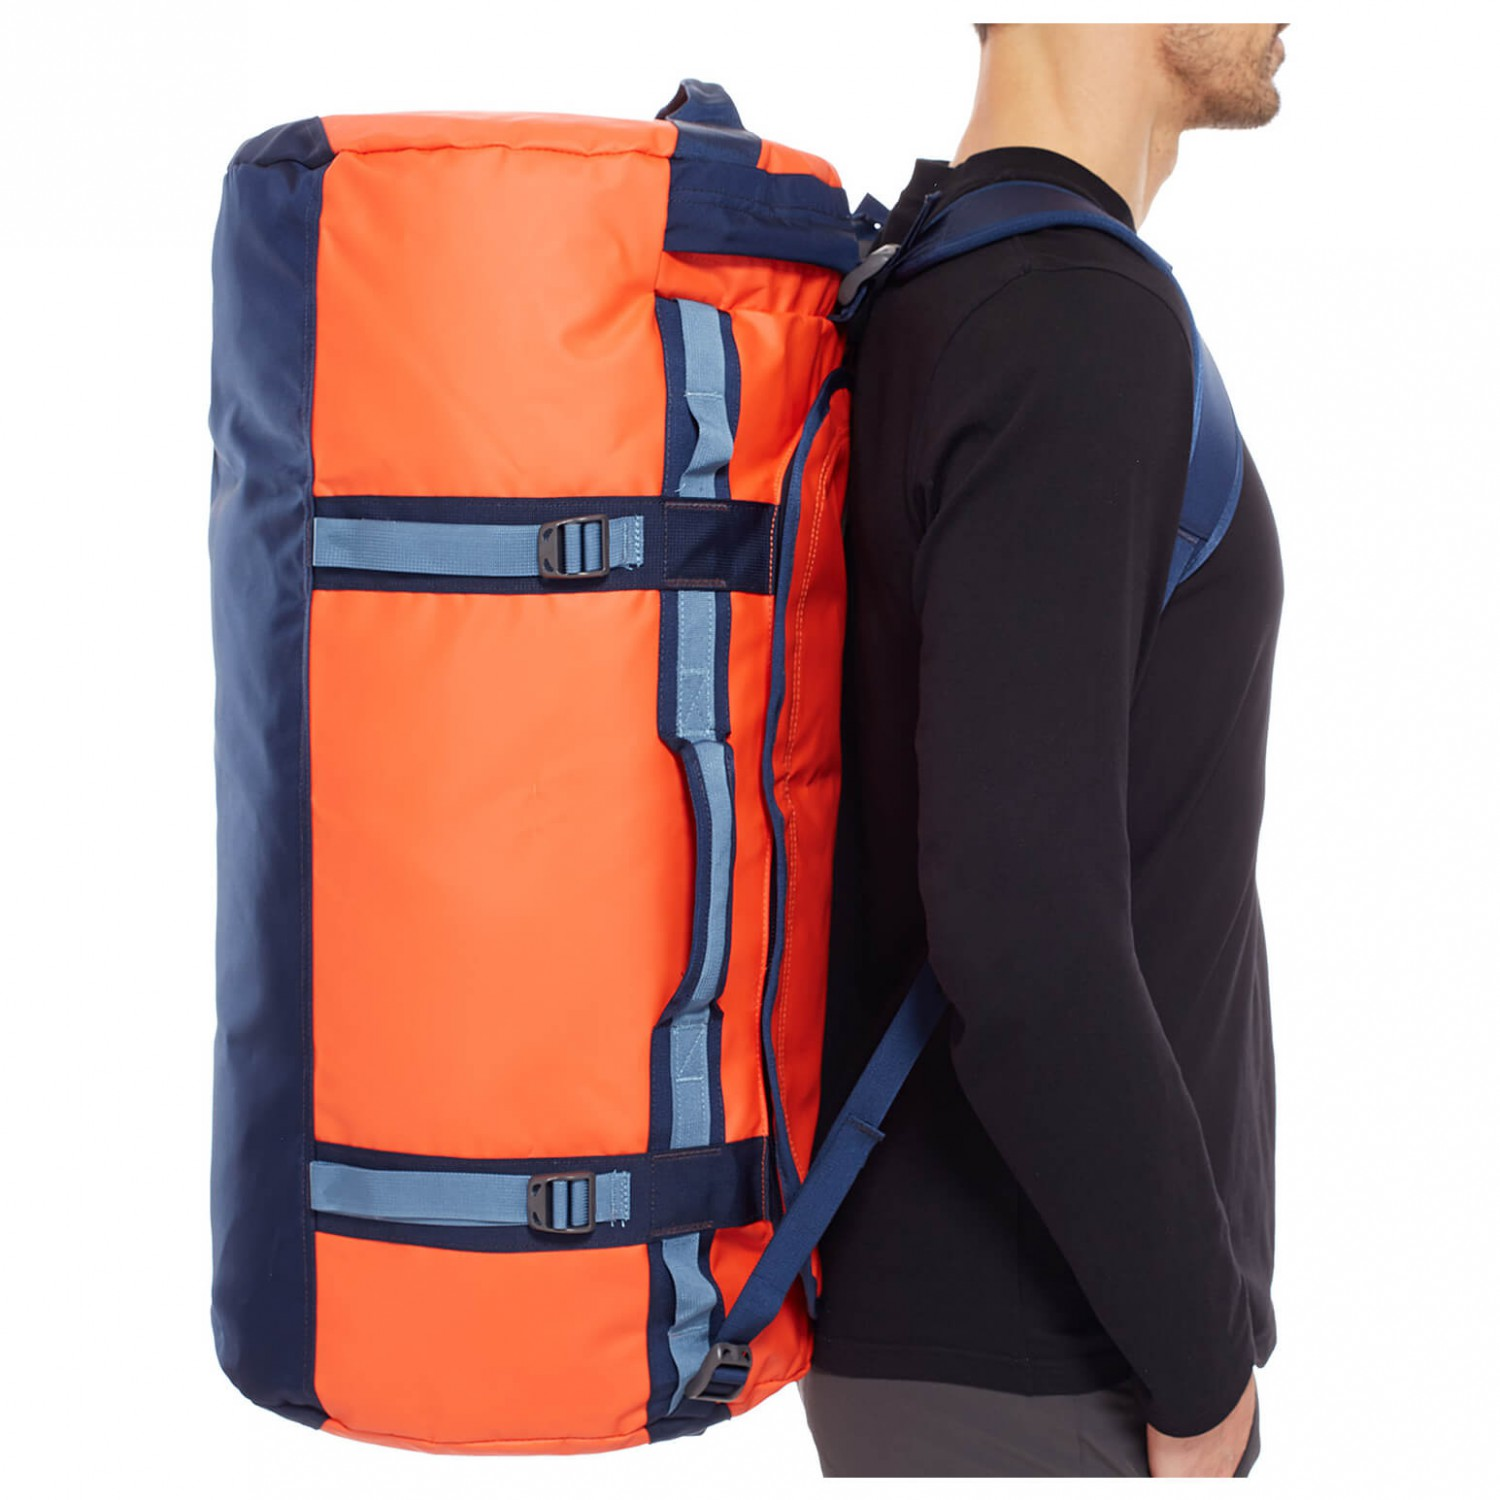 31fad847926 The North Face - Base Camp Duffel Large - Luggage ...